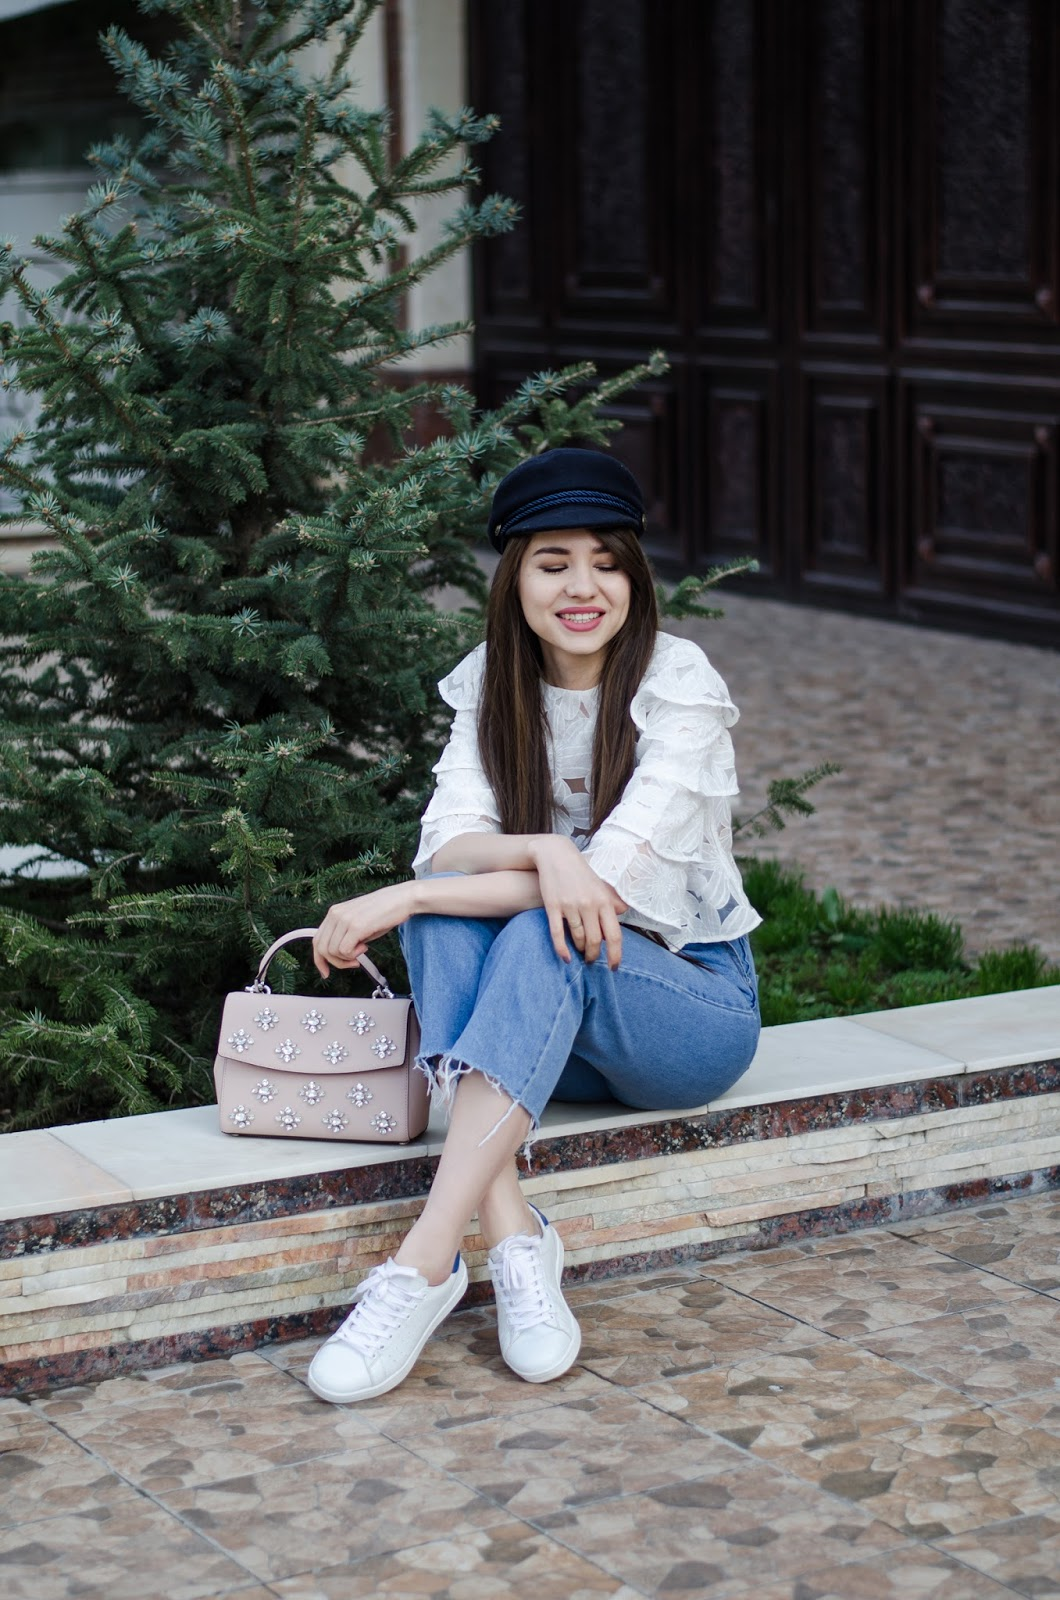 fashion blogger diyorasnotes diyora beta mom jeans white sneakers ruffles top cap michael kore bag